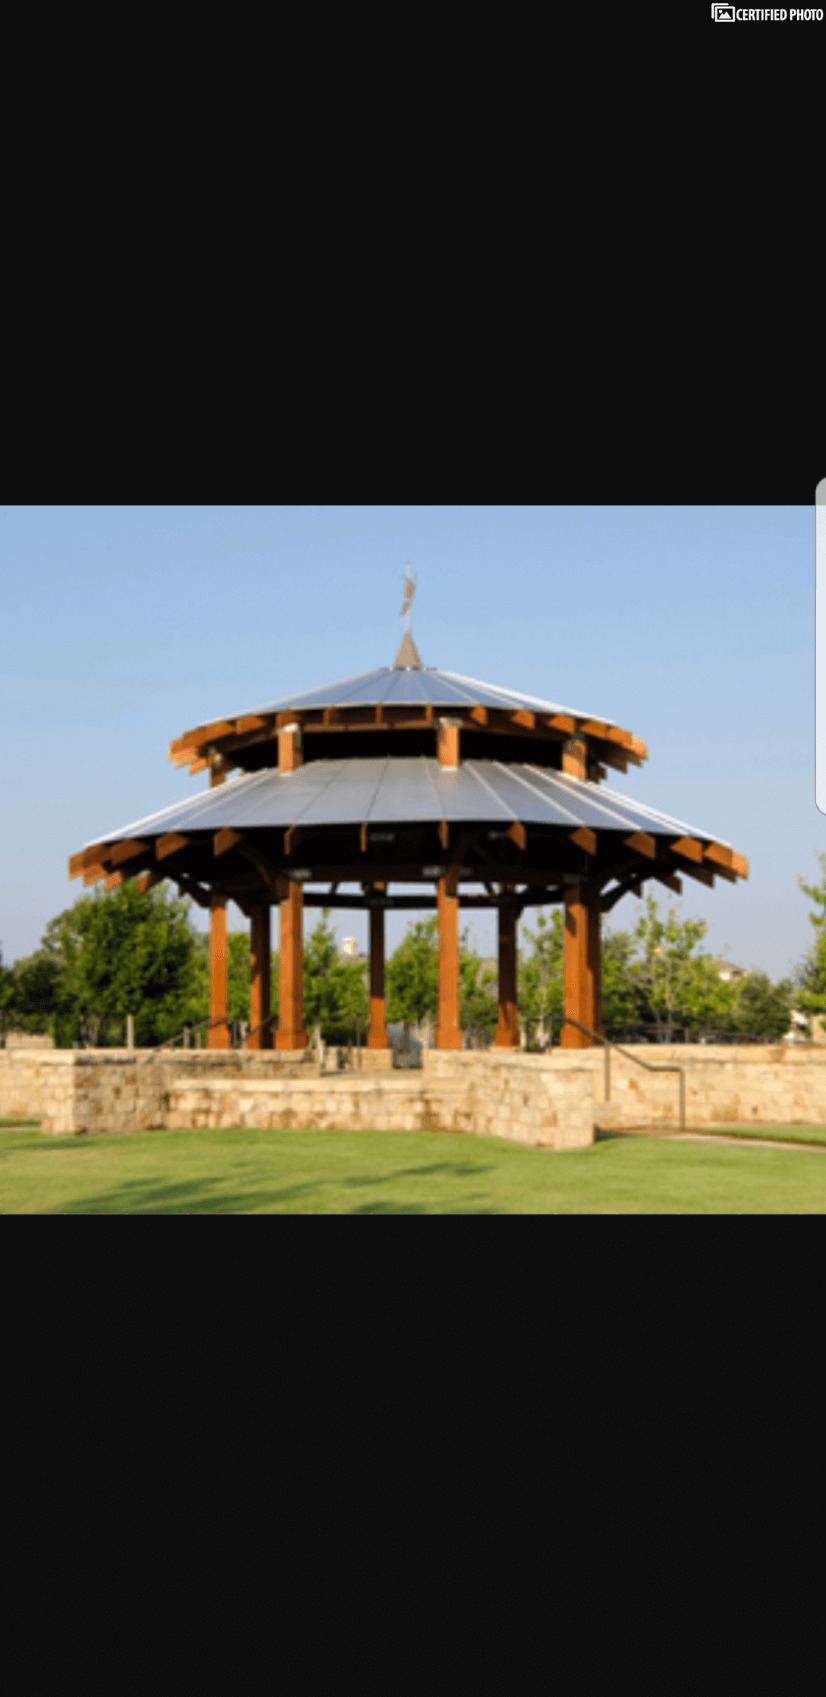 Neighborhood Gazebo for special events and concerts